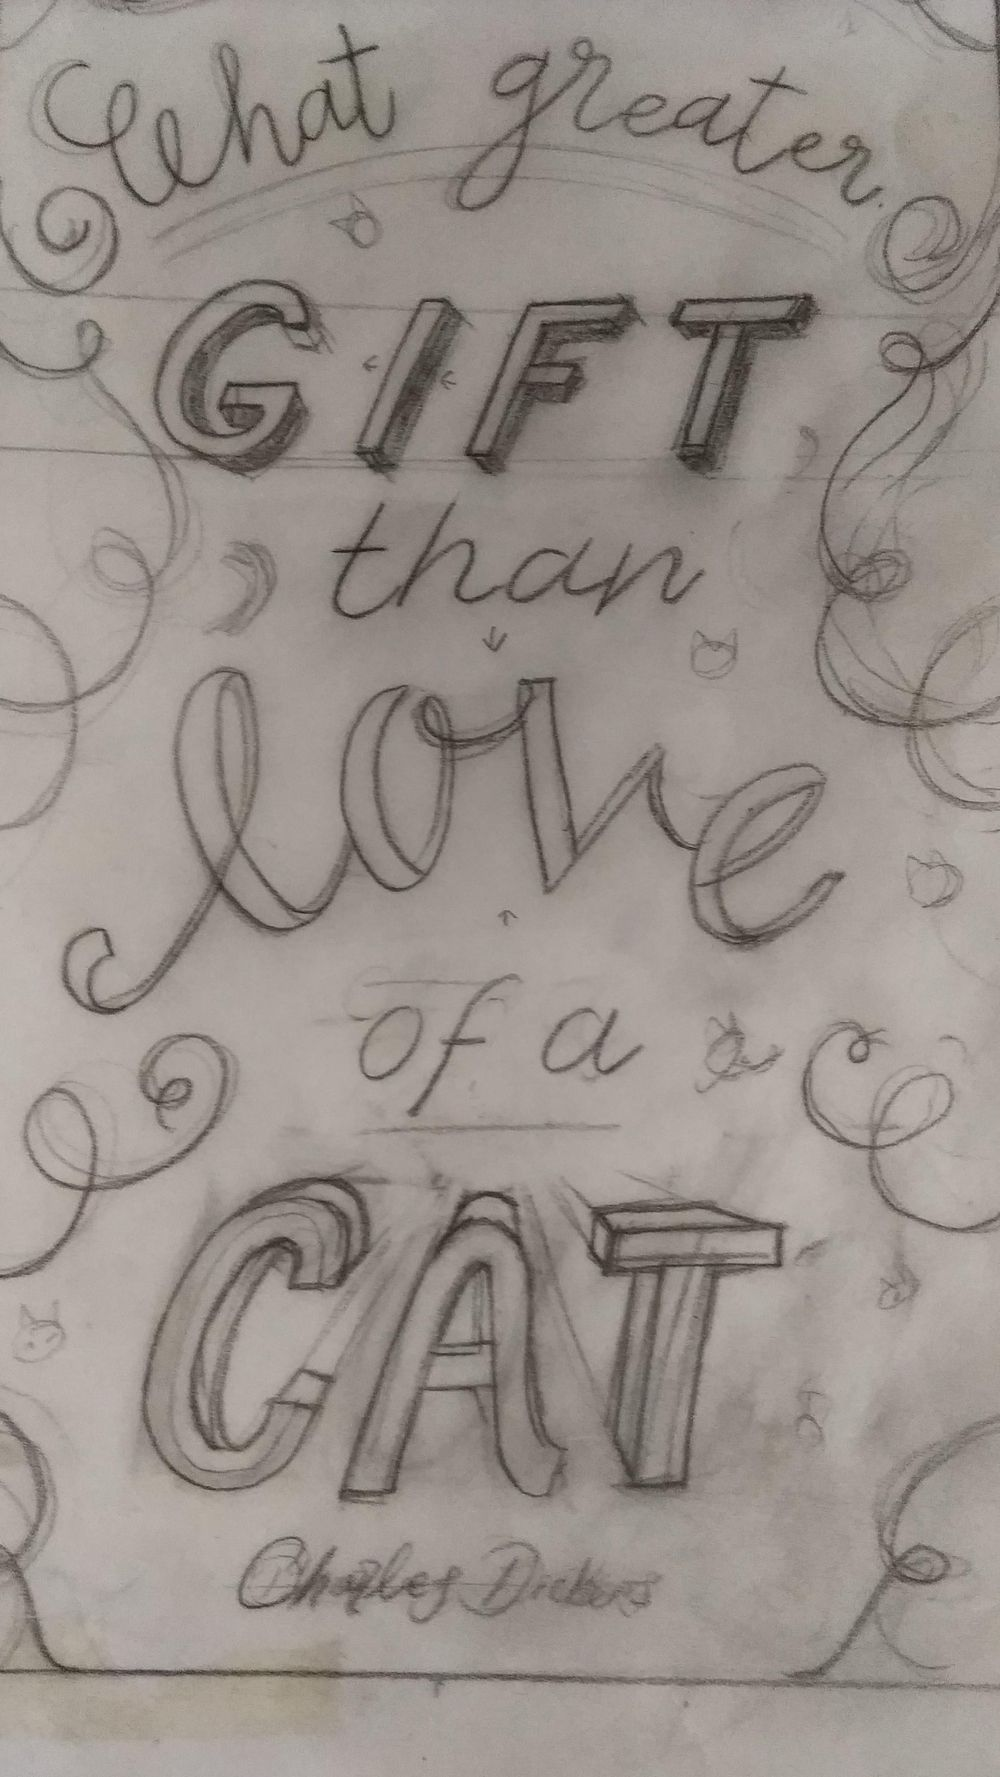 What greater gift than... - image 5 - student project